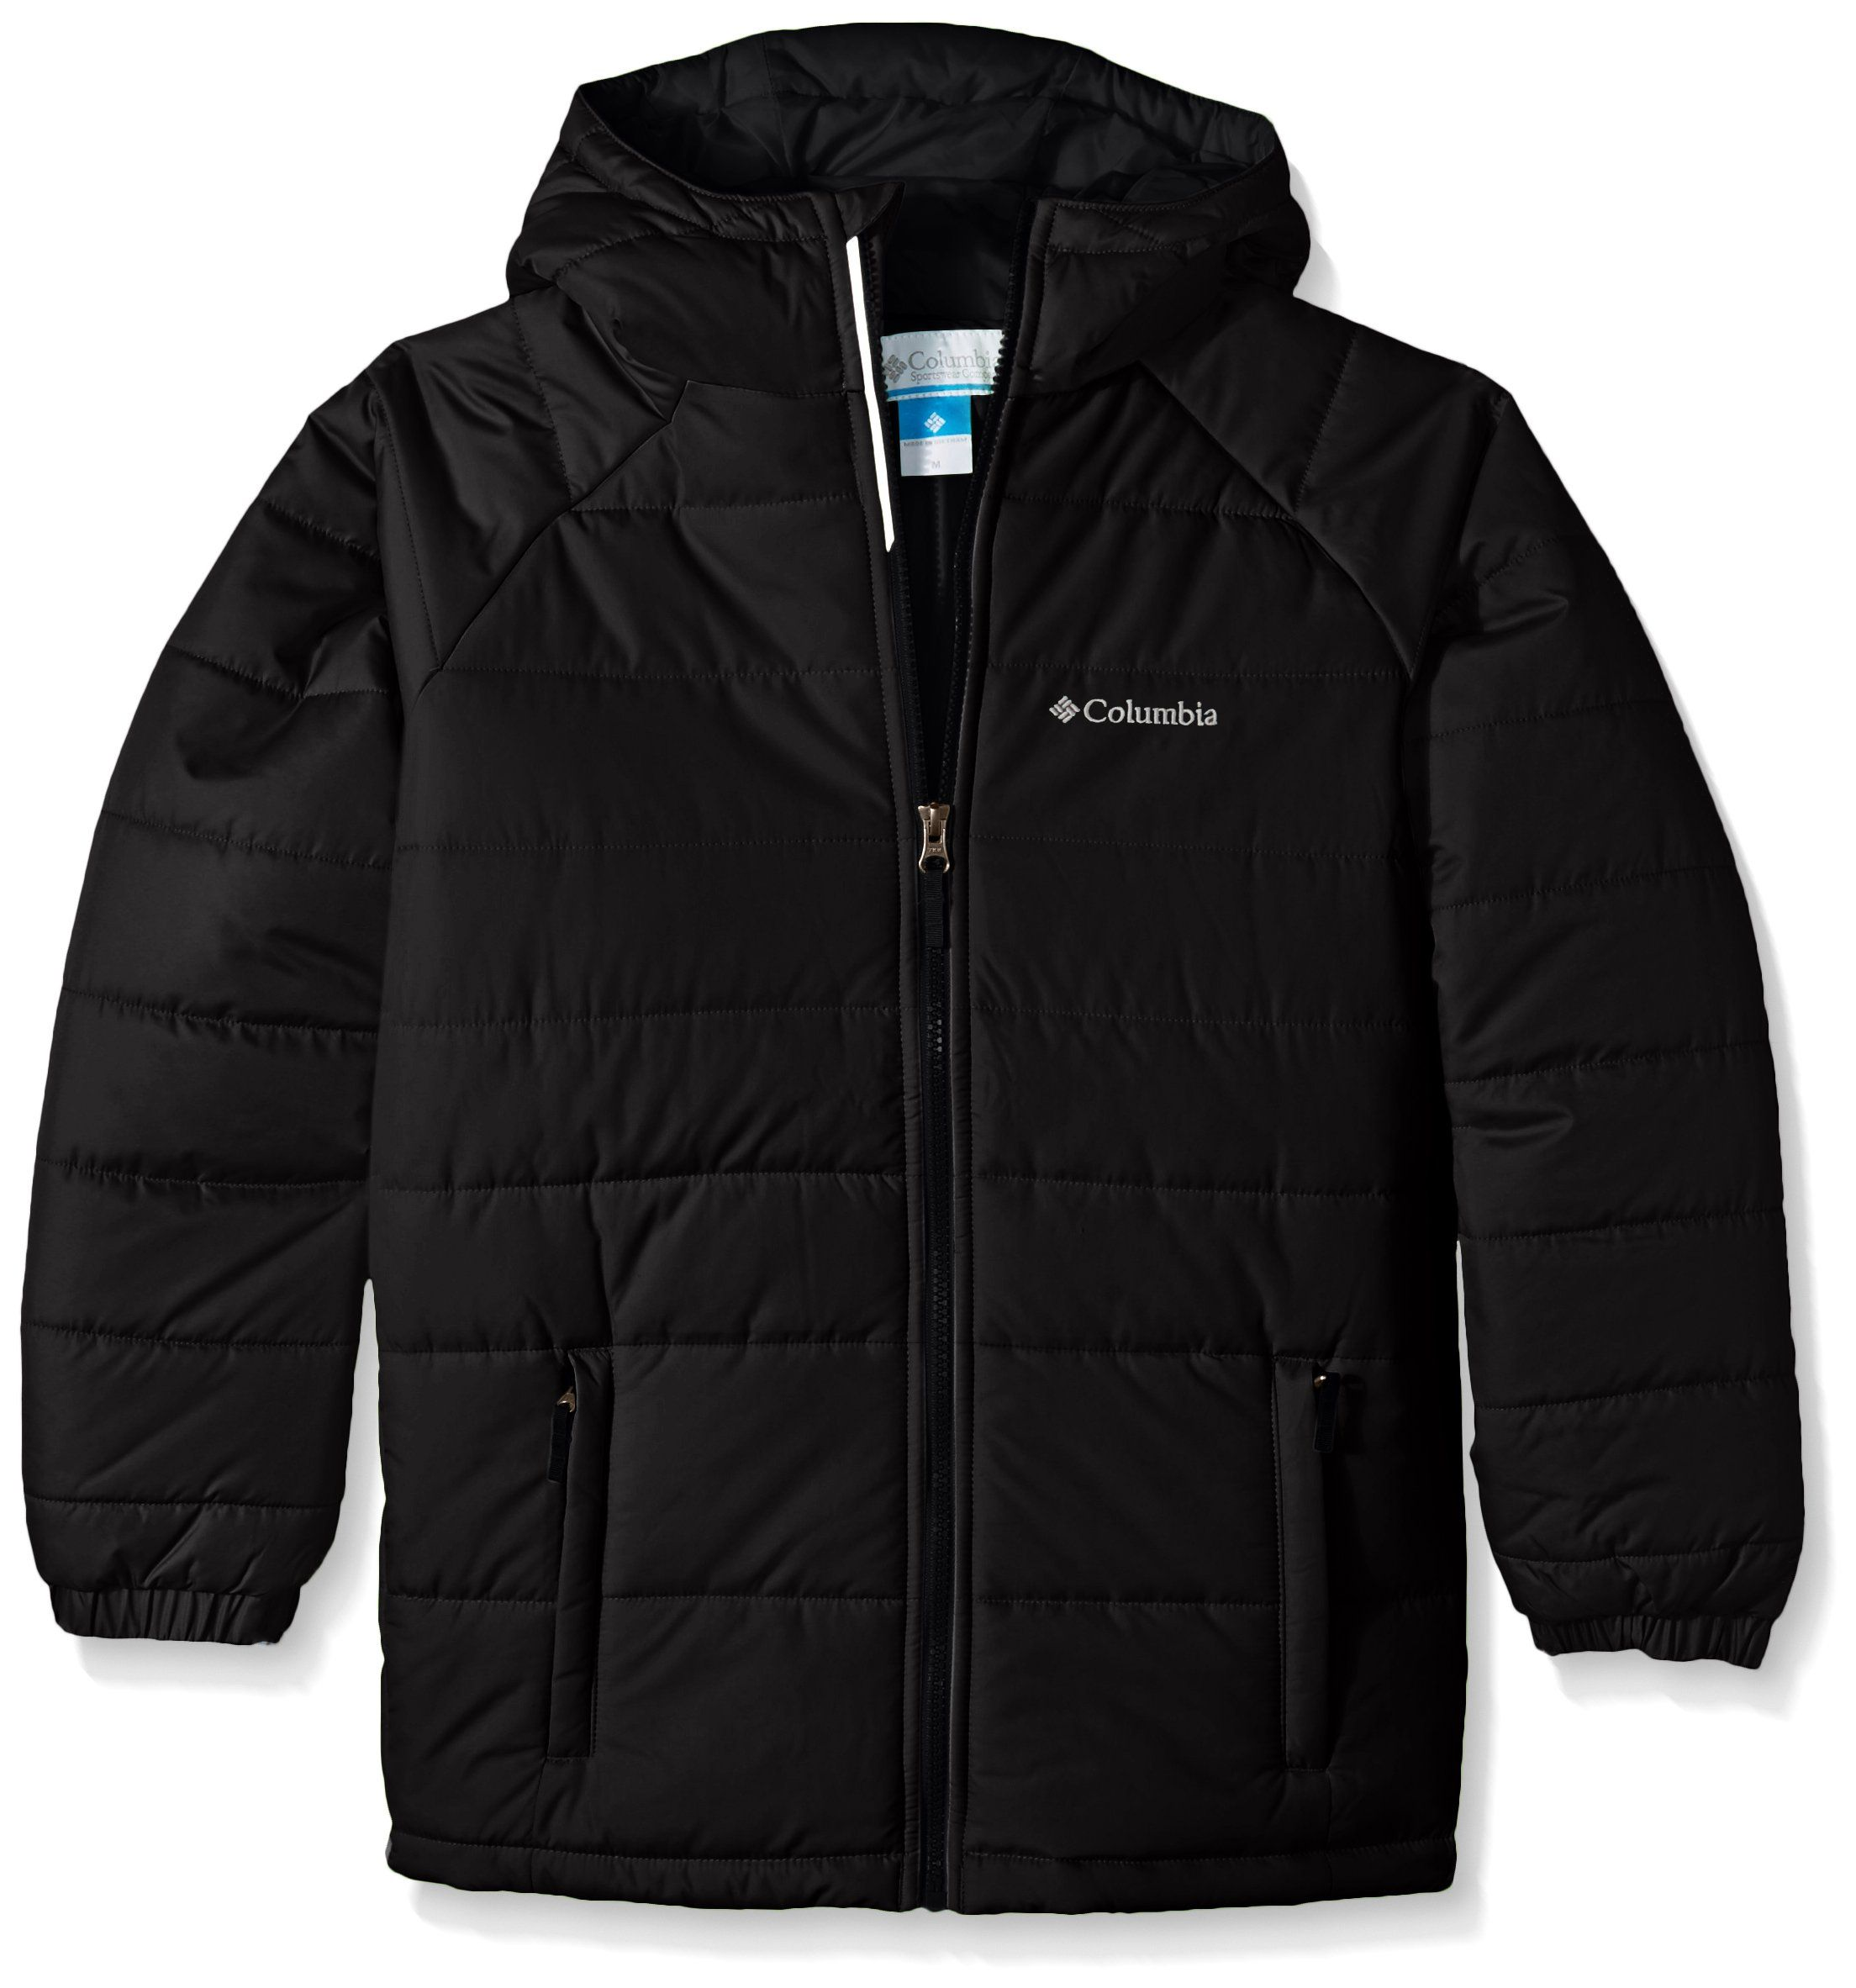 47fa11500 Columbia Big Boys' Tree Time Puffer Jacket, Black, Small. Water resistant  fabric. Insulated. Attached, adjustable taffeta lined storm hood.